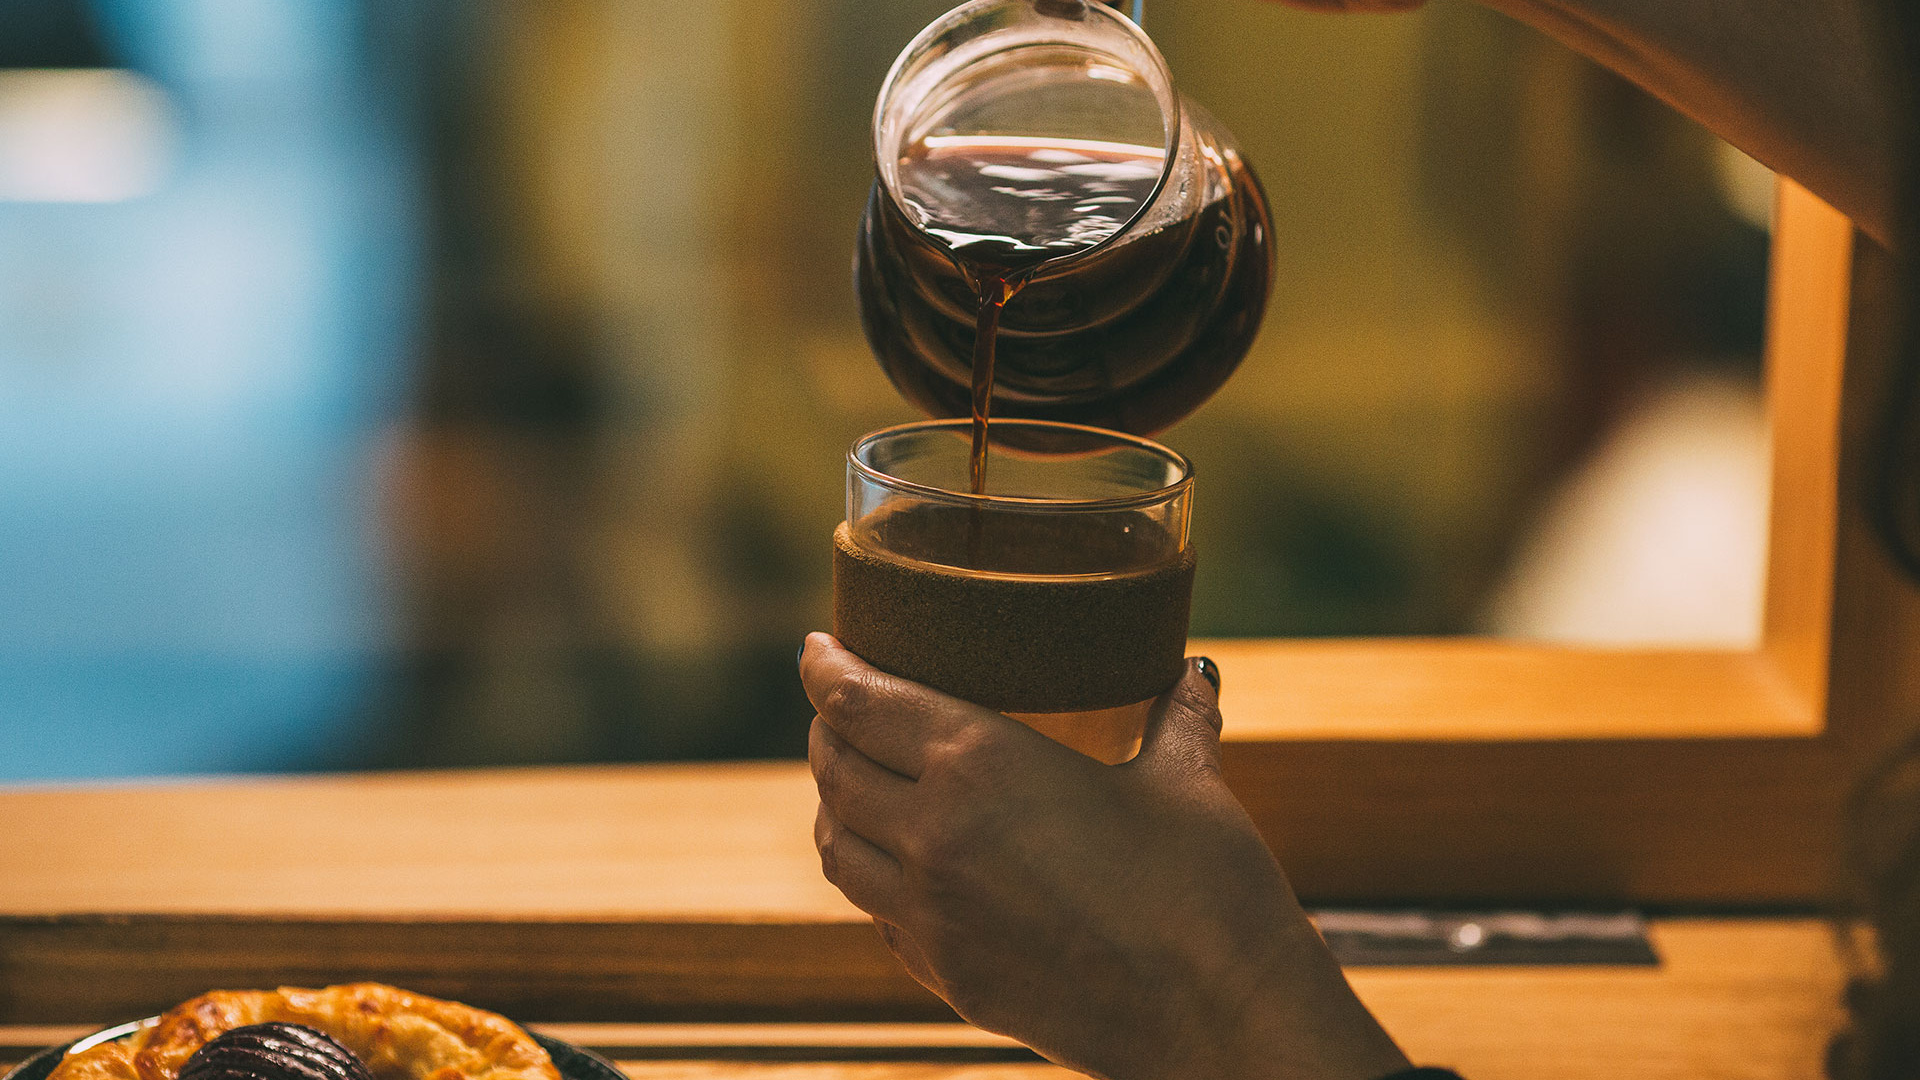 The Top Five Reasons To Make Coffee Island Your New